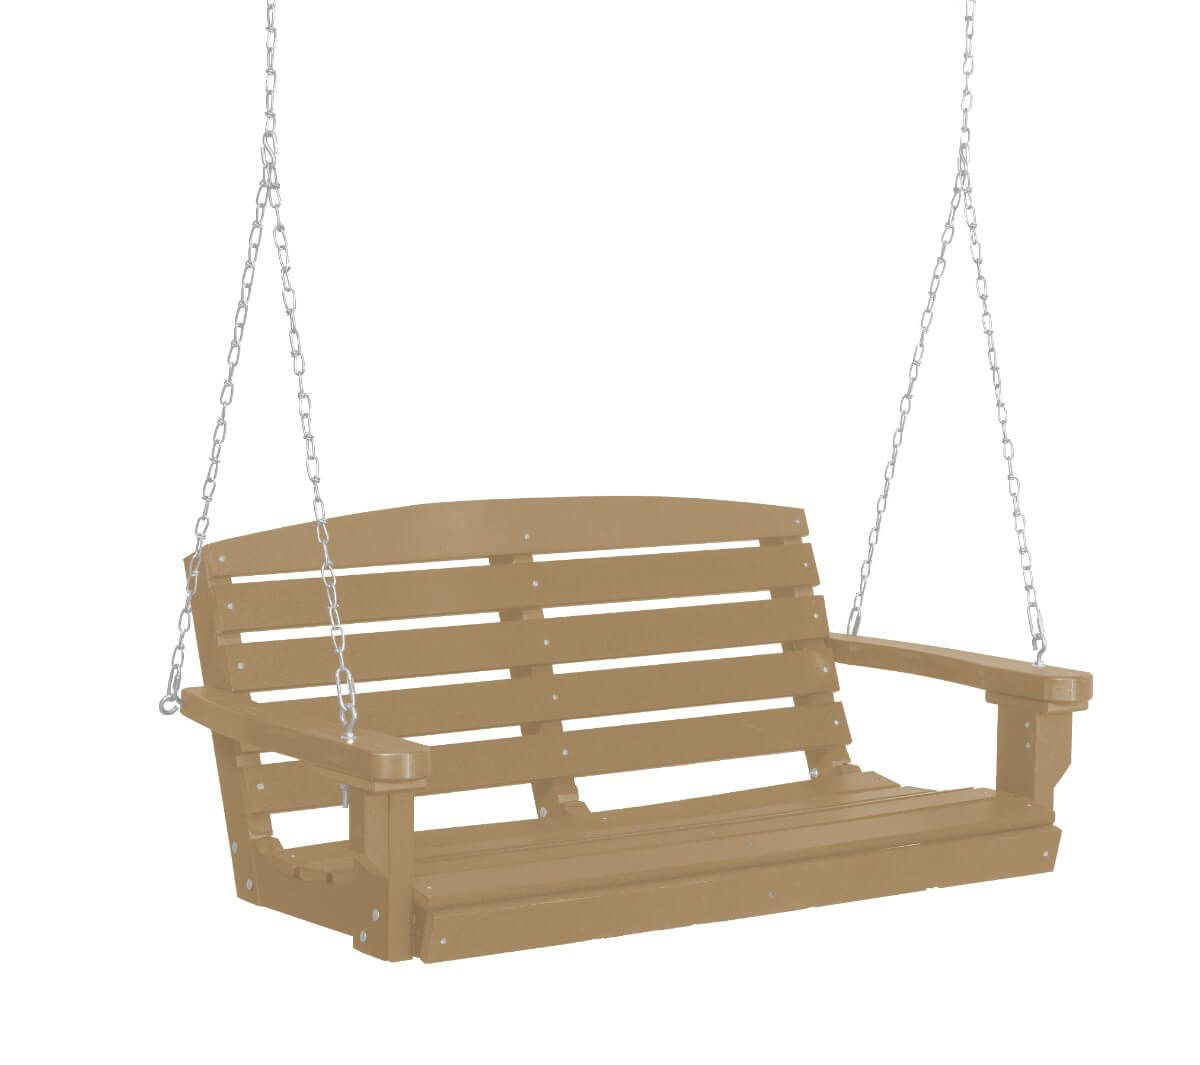 Weathered Wood Green Bay Porch Swing